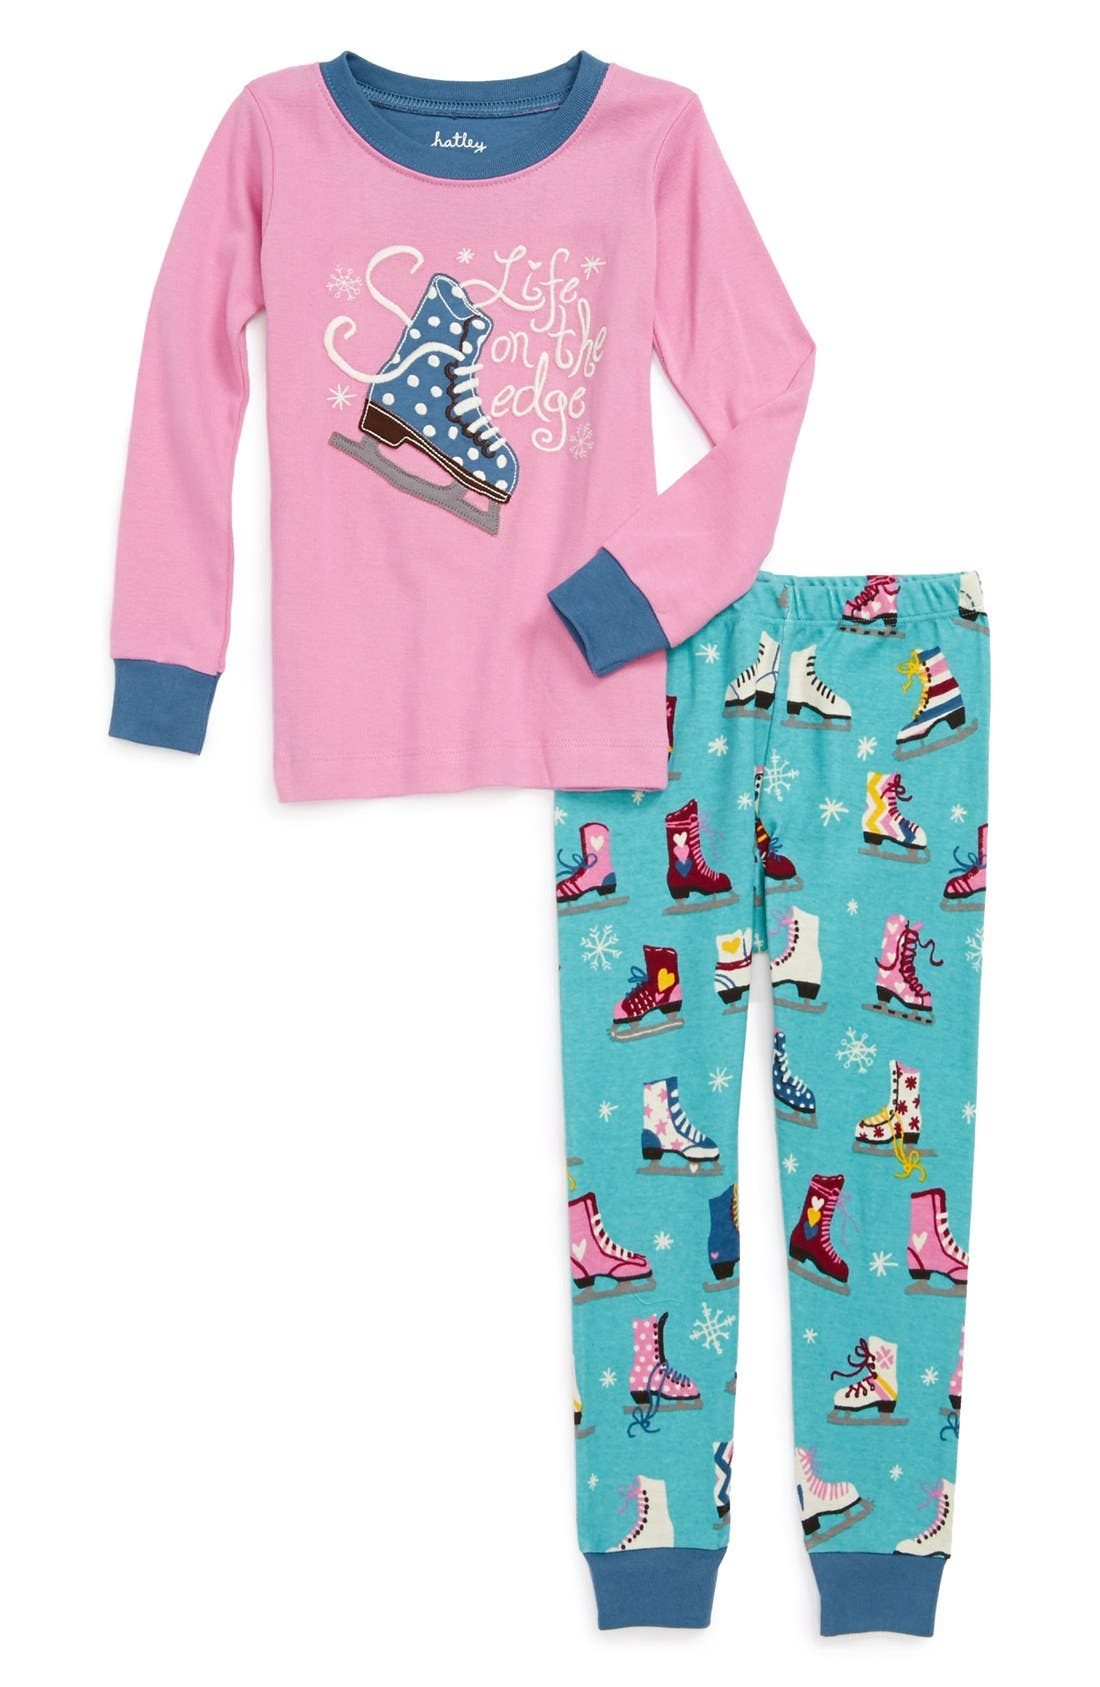 Main Image - Hatley 'Life on the Edge' Two-Piece Fitted Pajamas (Toddler Girls)